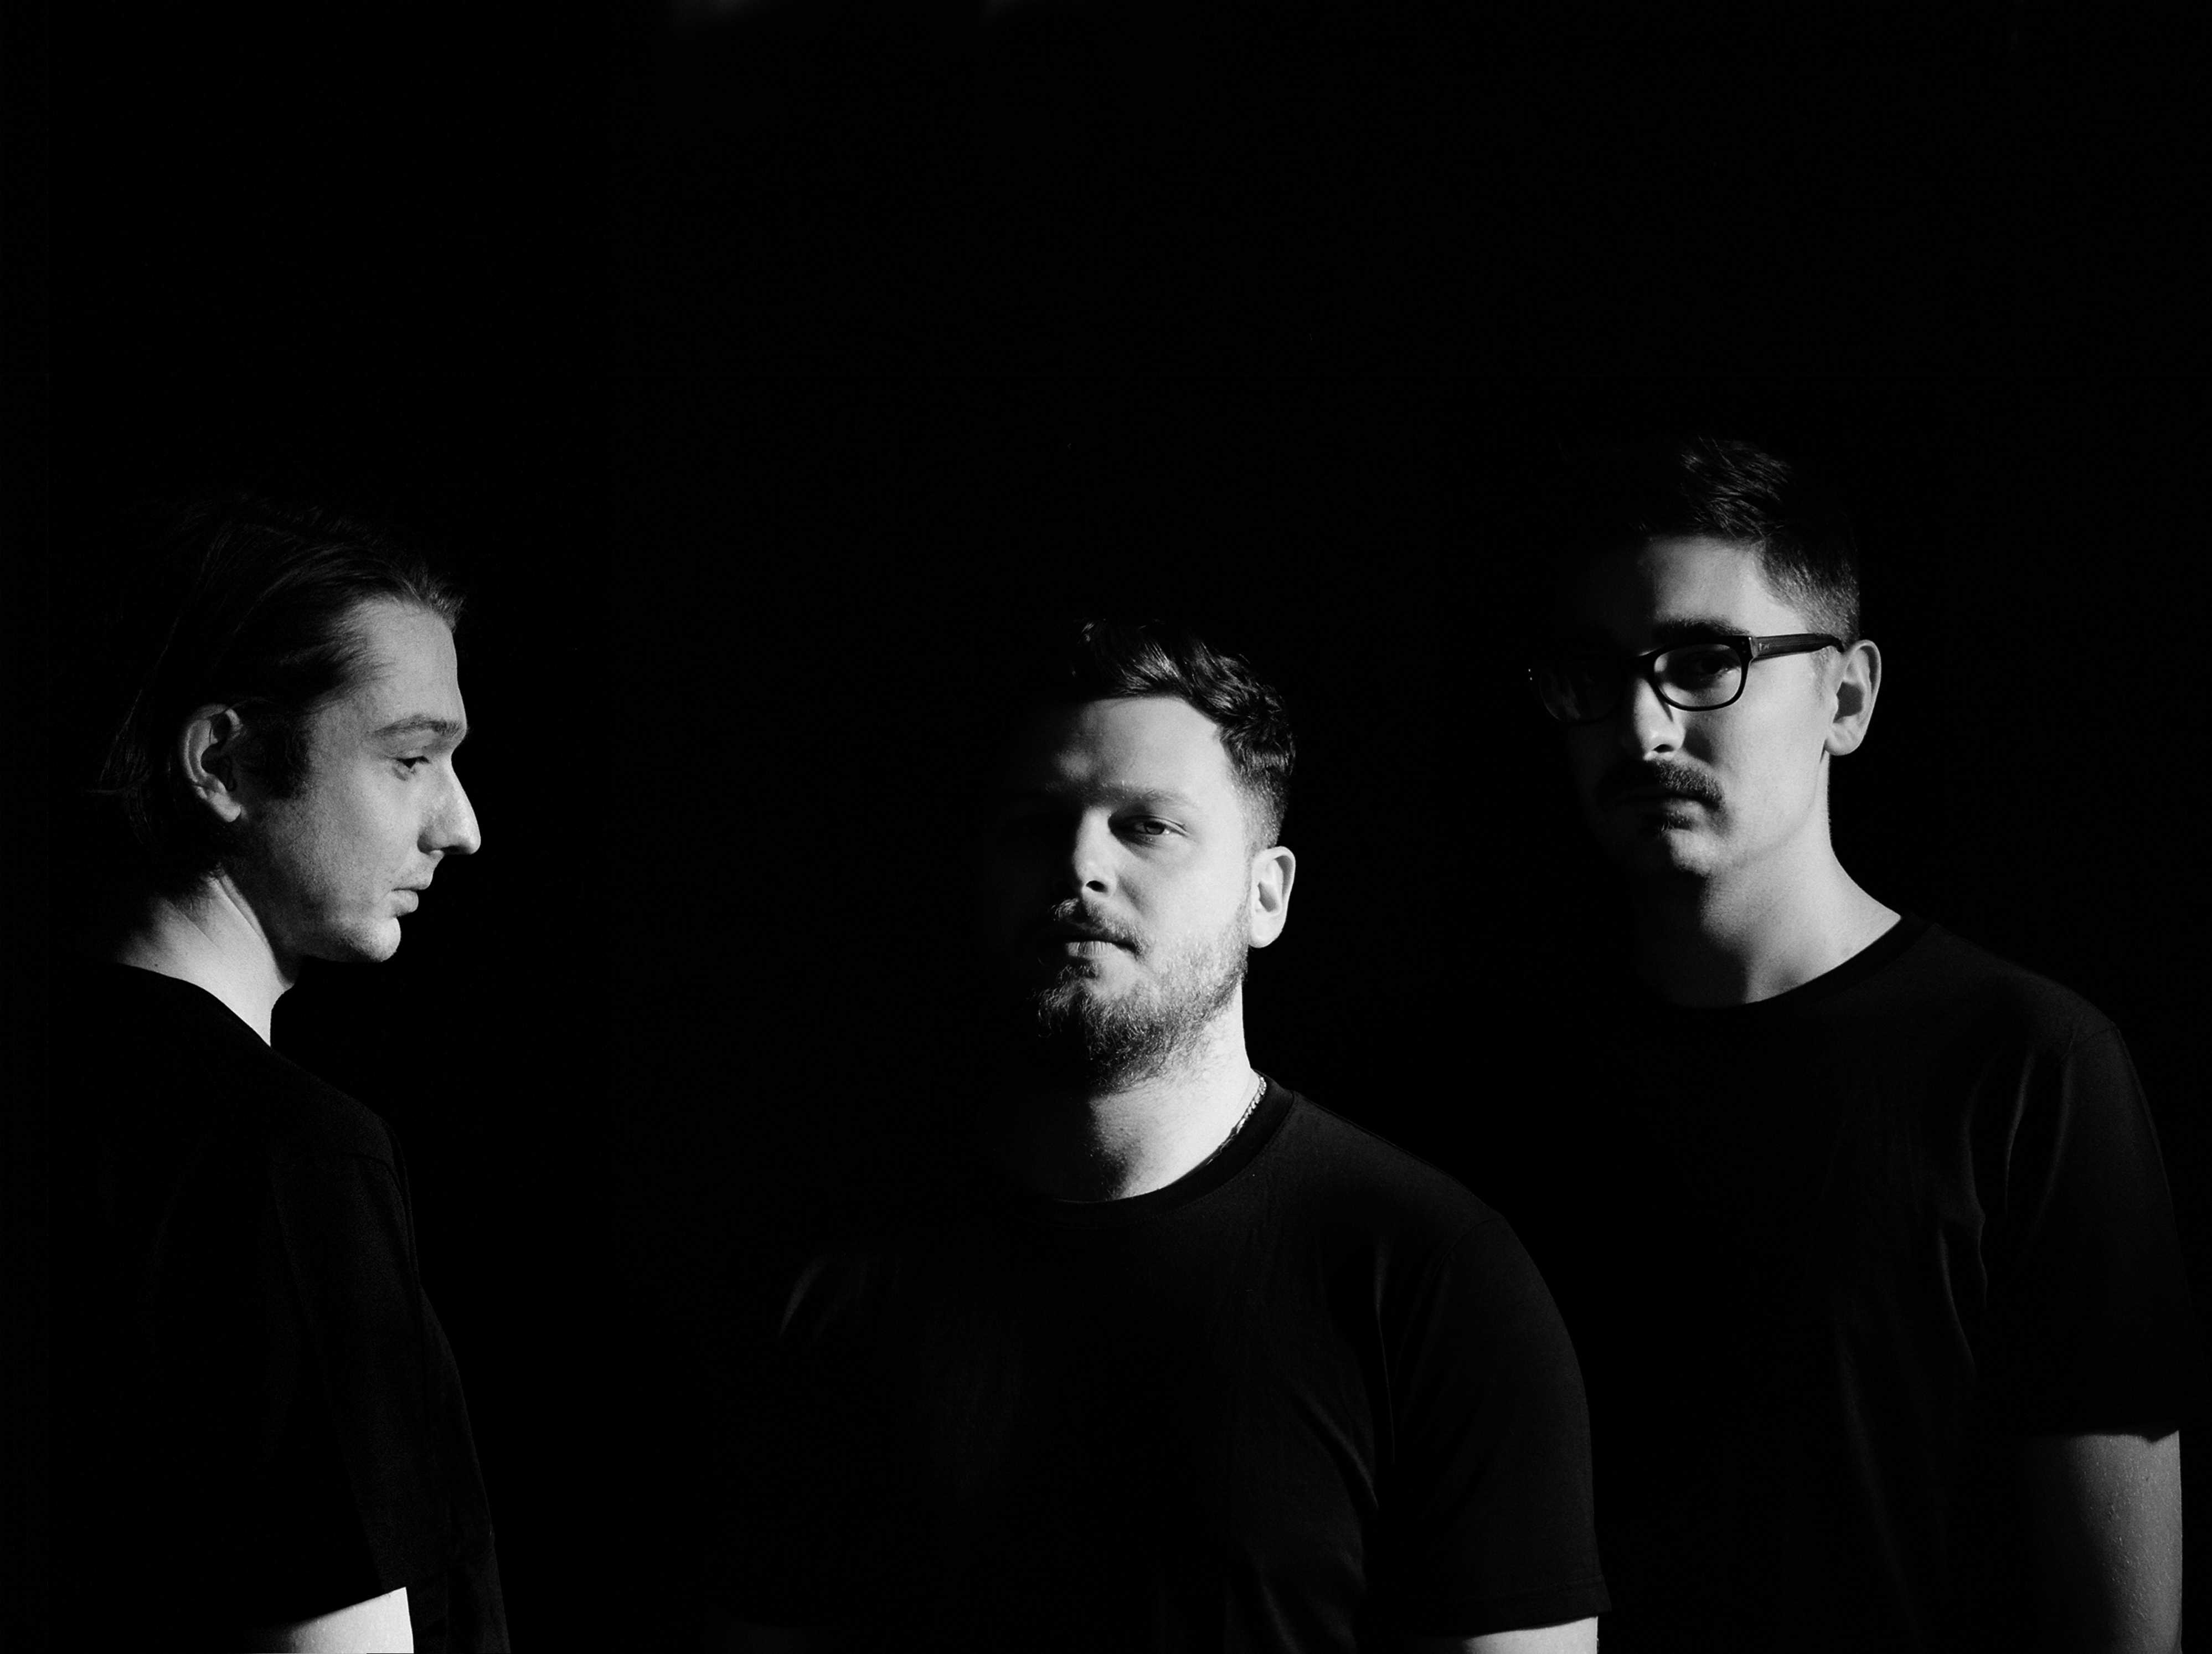 Review: The music of Alt-J (∆)